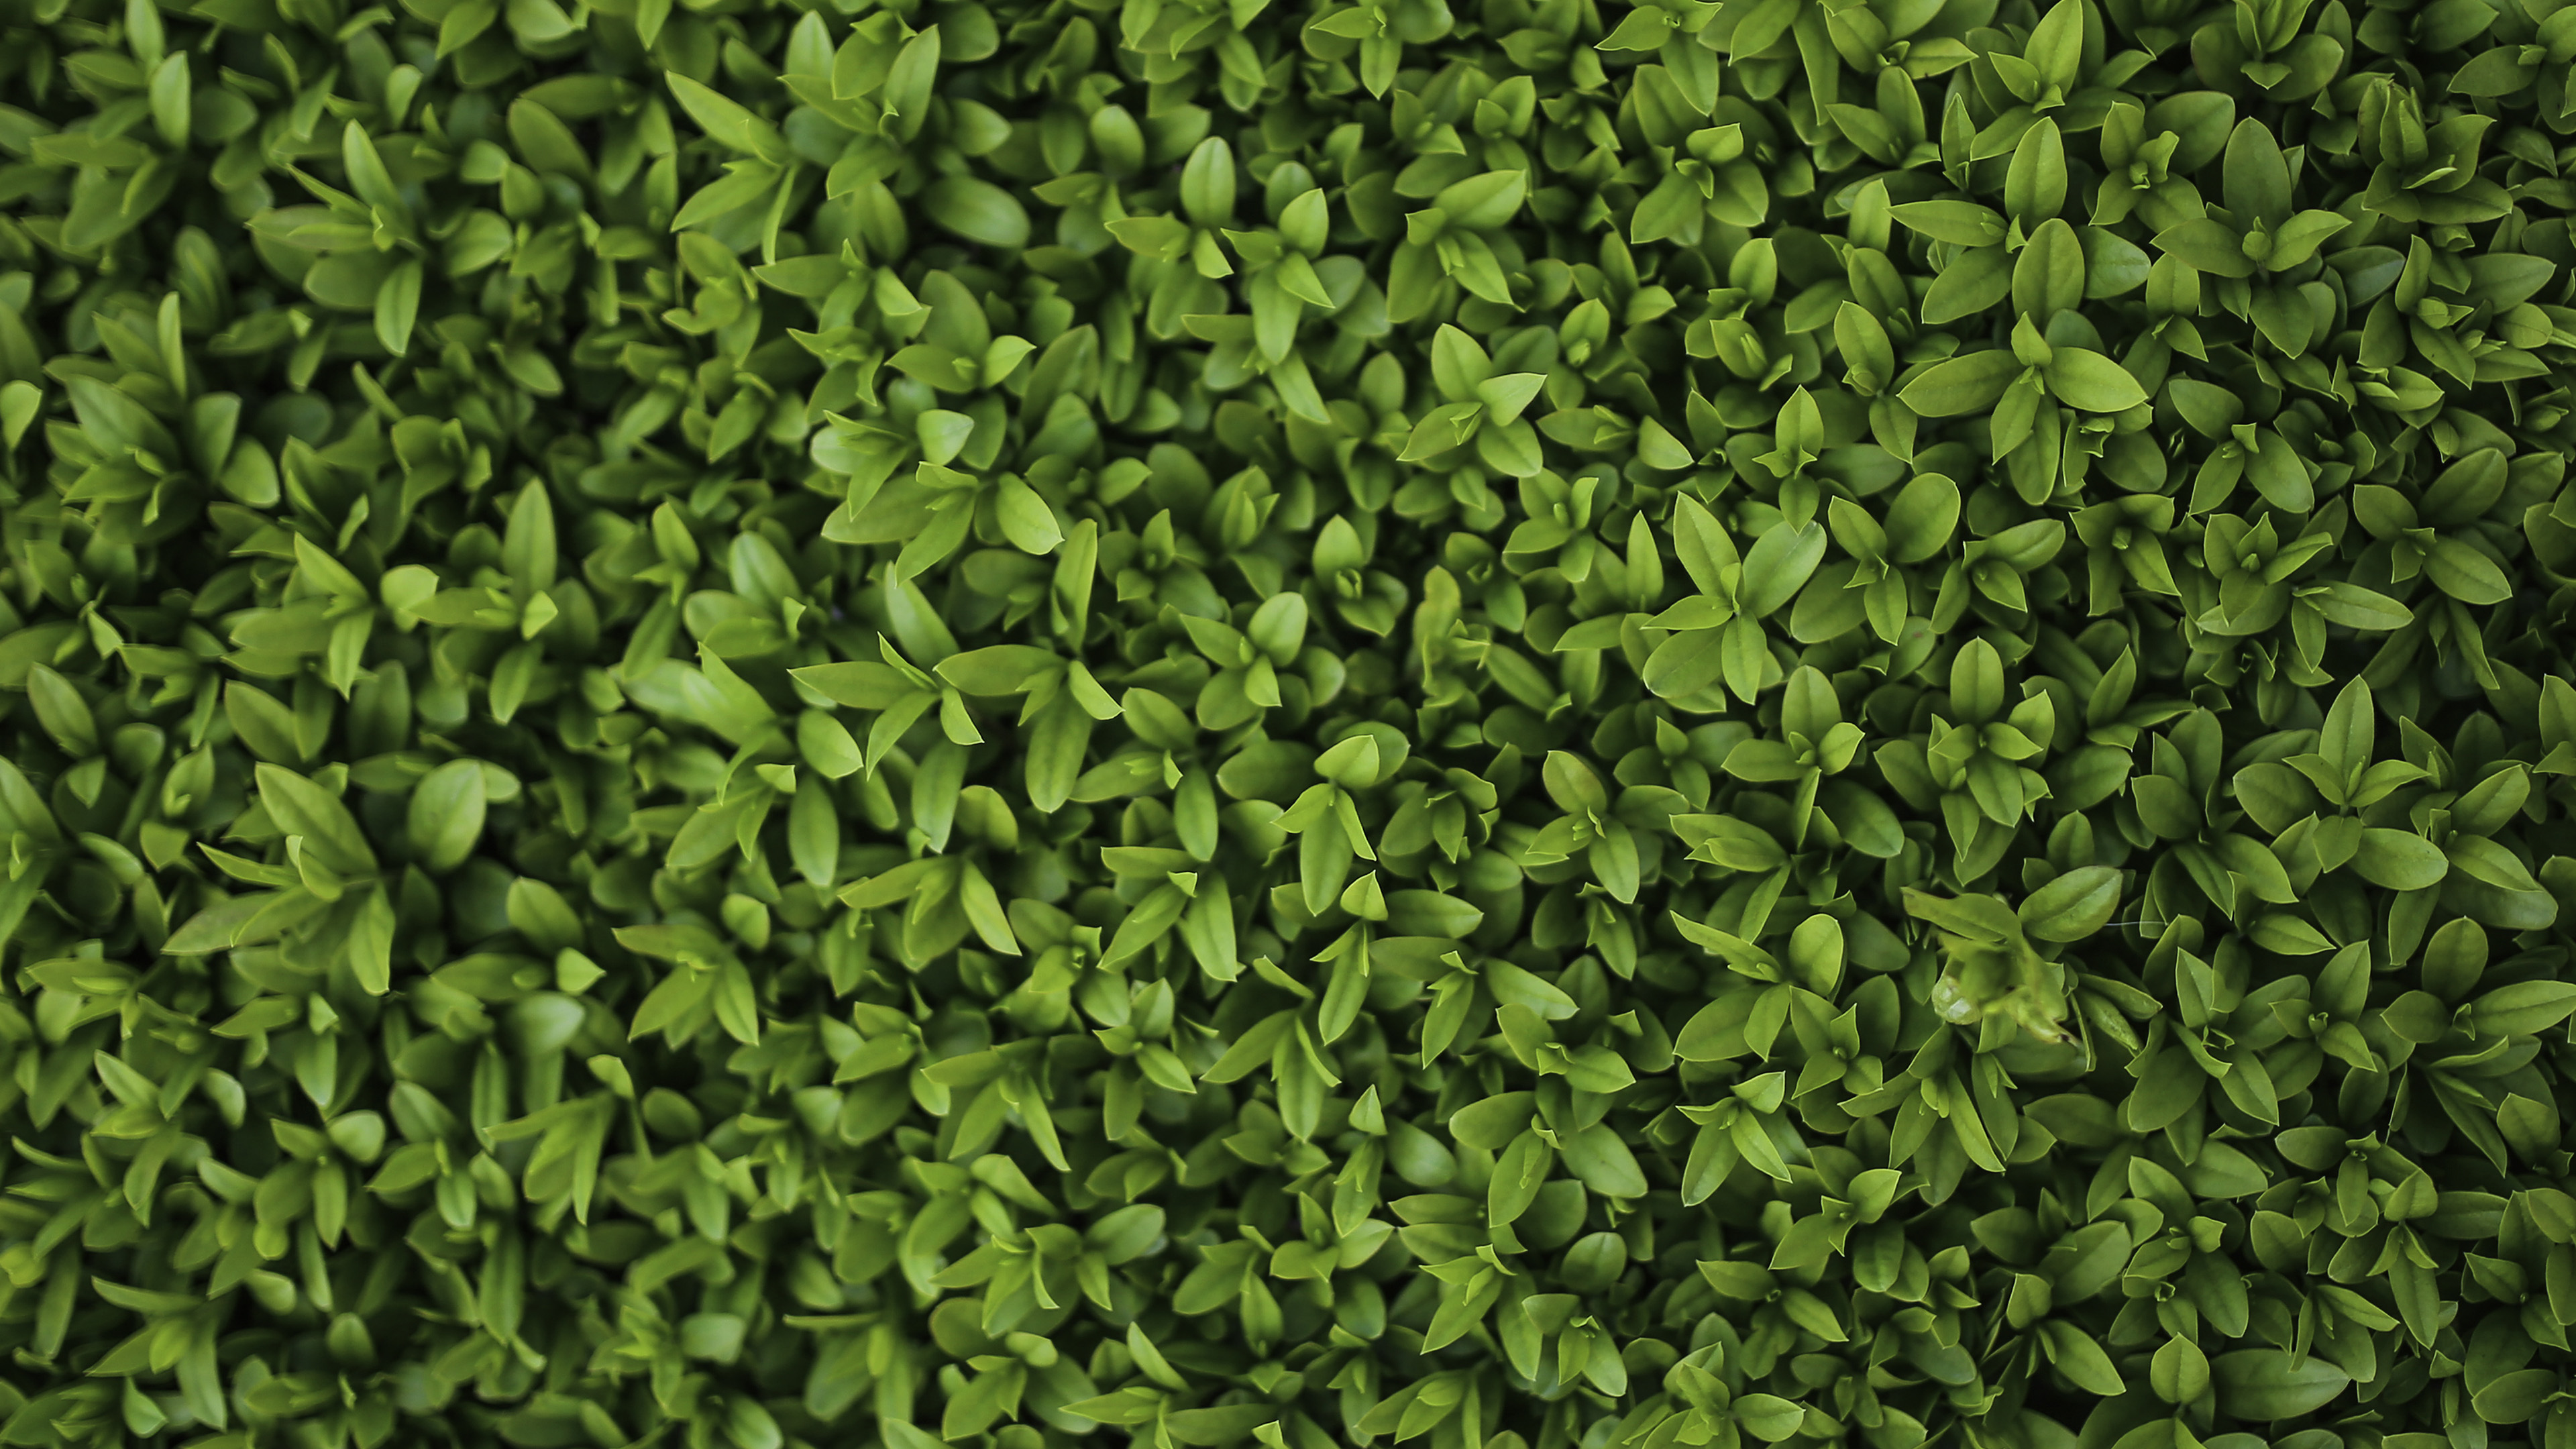 vk70-nature-green-leaf-grass-garden-flower-pattern - Papers.co